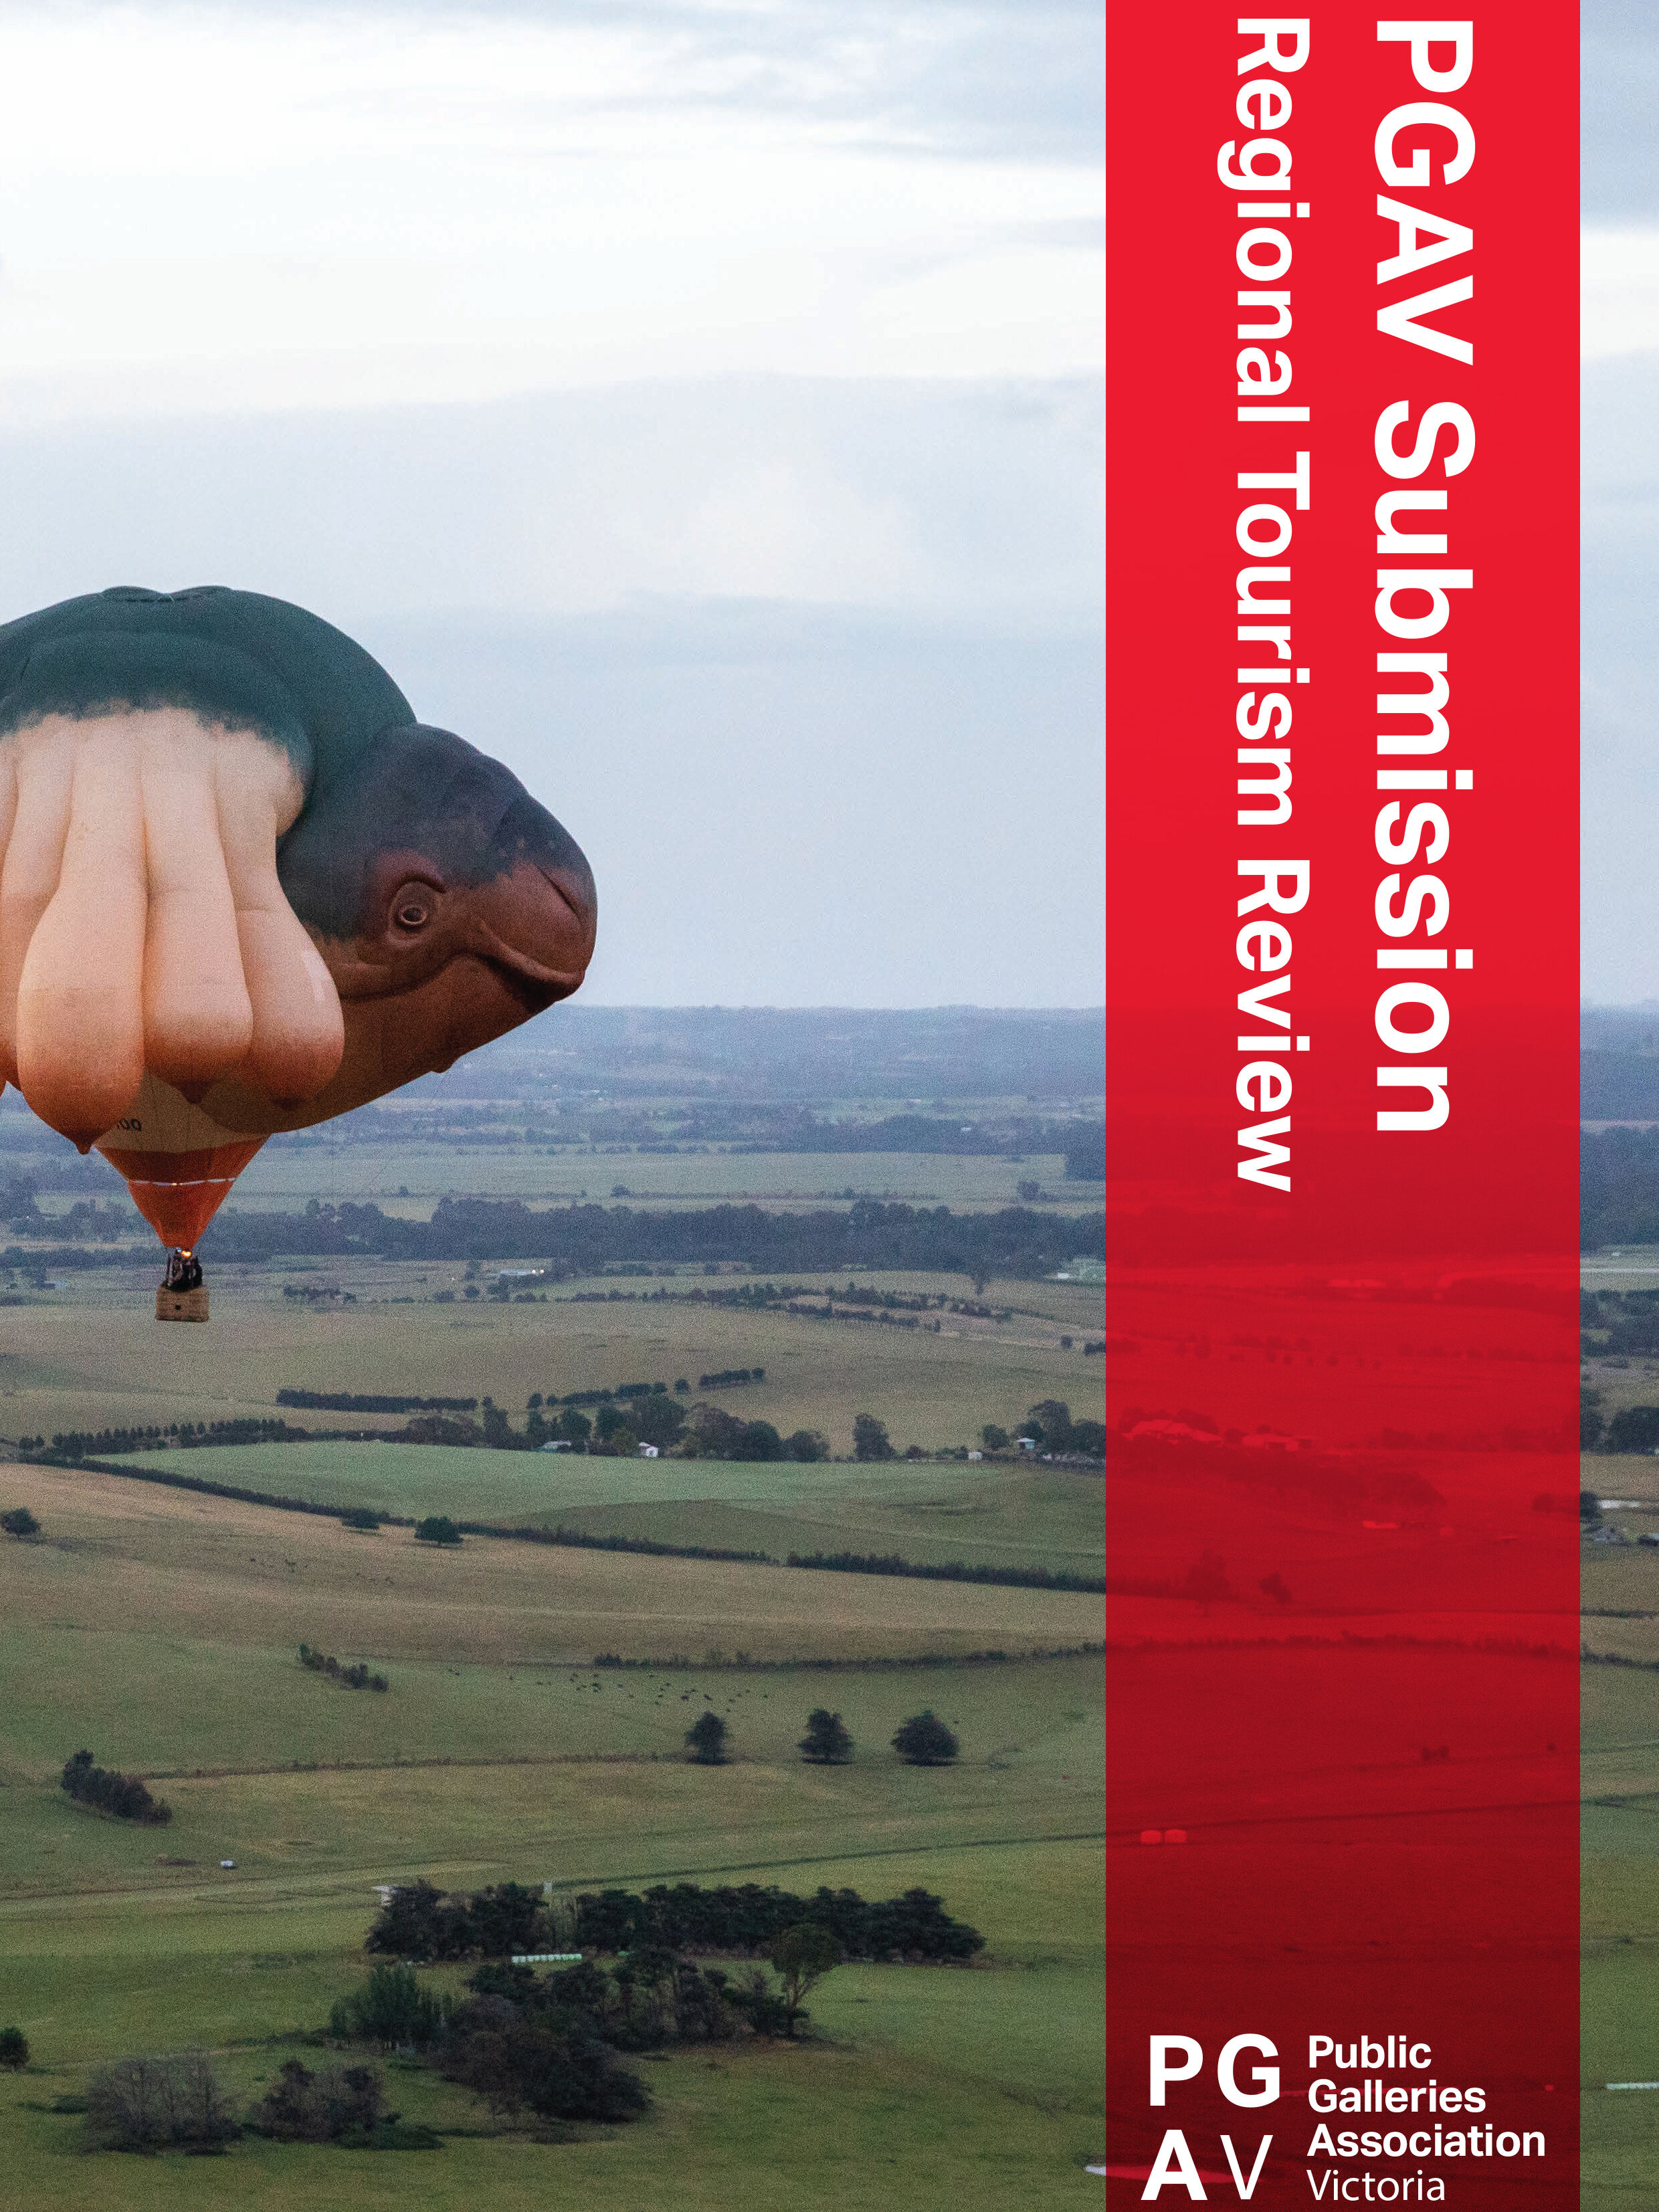 PGAV Regional Tourism Review Submission - COVER